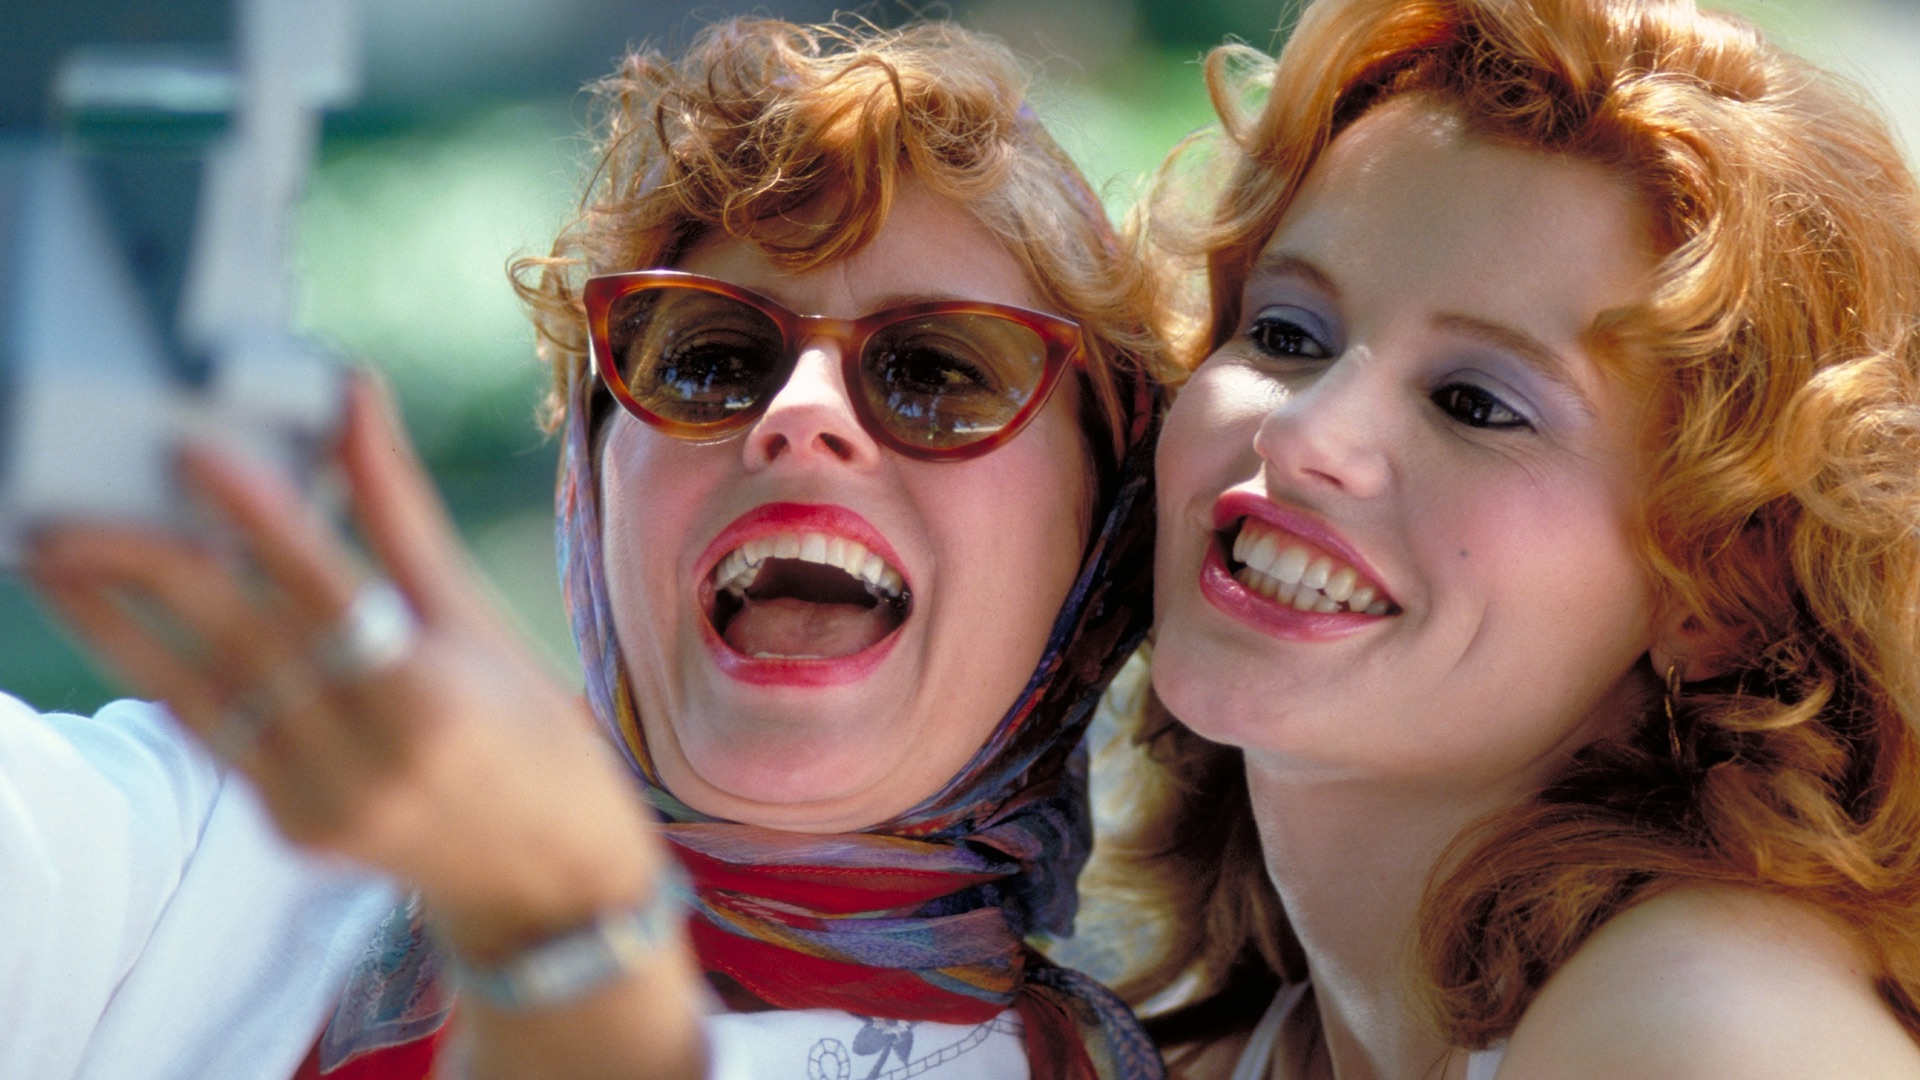 Thelma and Louise, the friendship gold standard take a selfie.